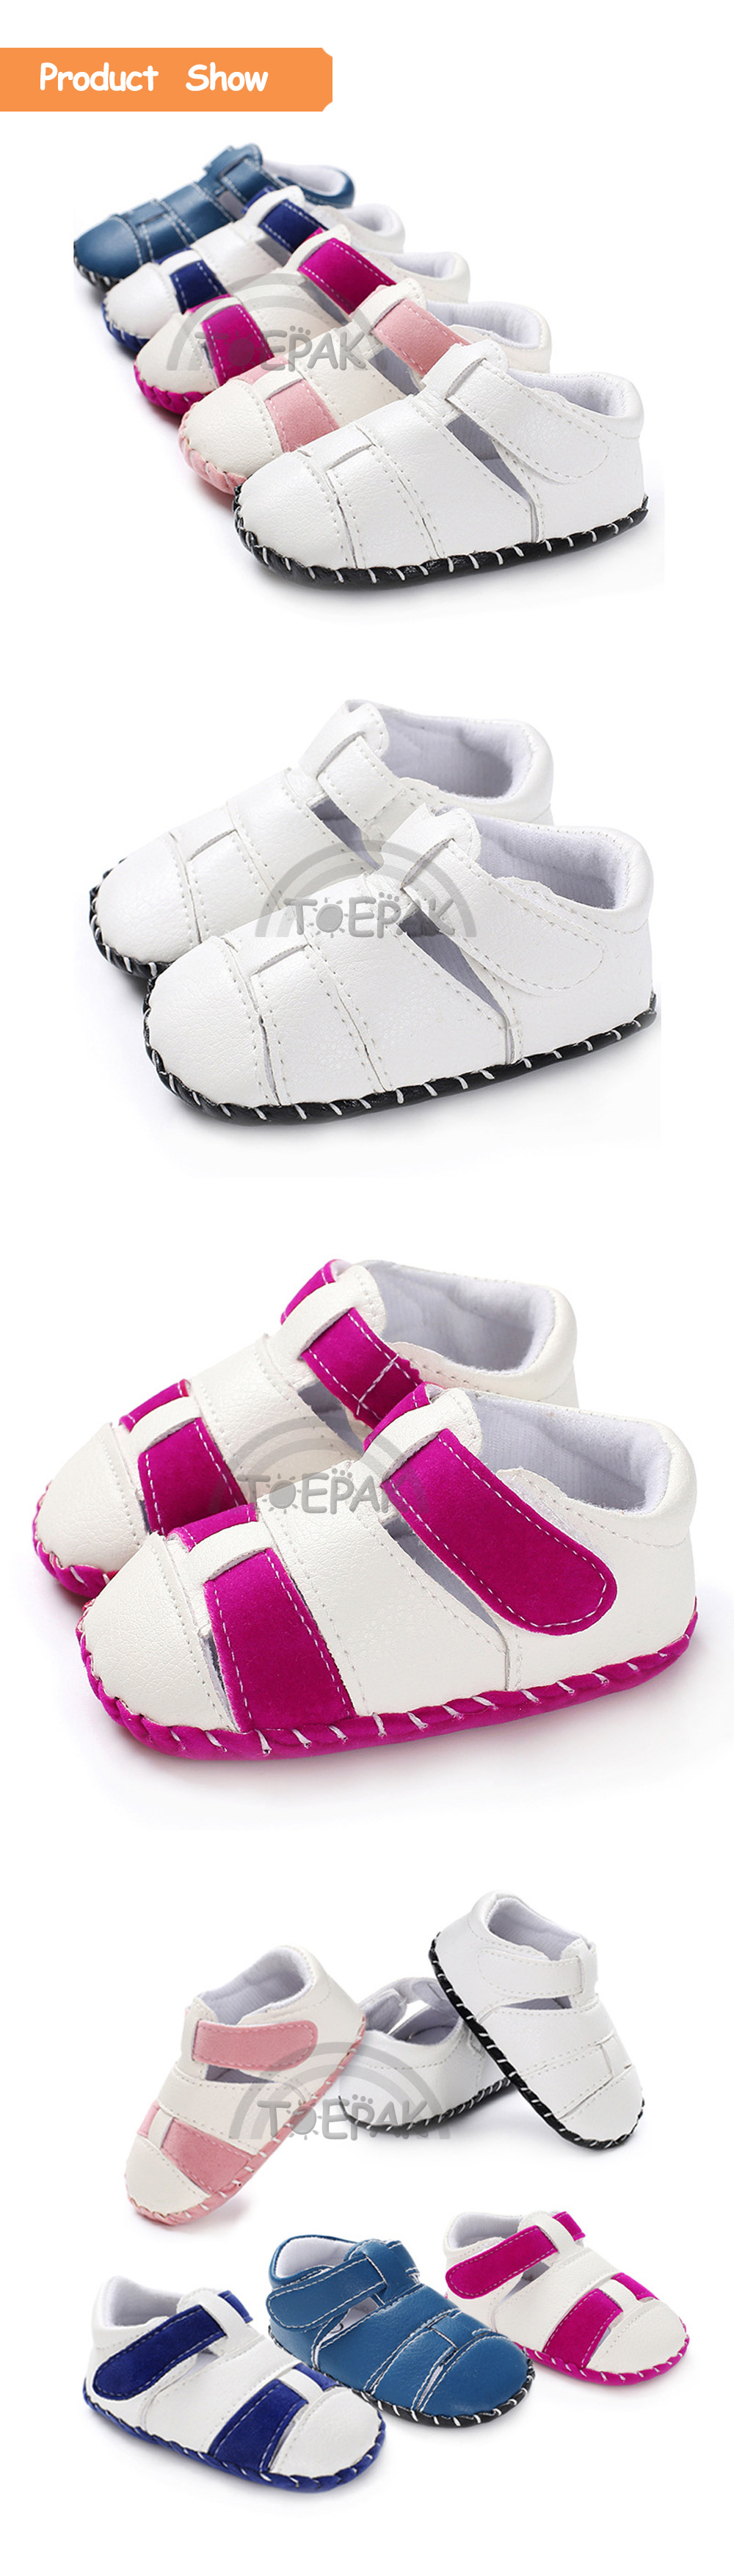 Mambobaby Spring And Summer The New PU Baby Infant Shoes Soft Bottom Wear-resistant Low Help Casual Toddler Shoes Gifts